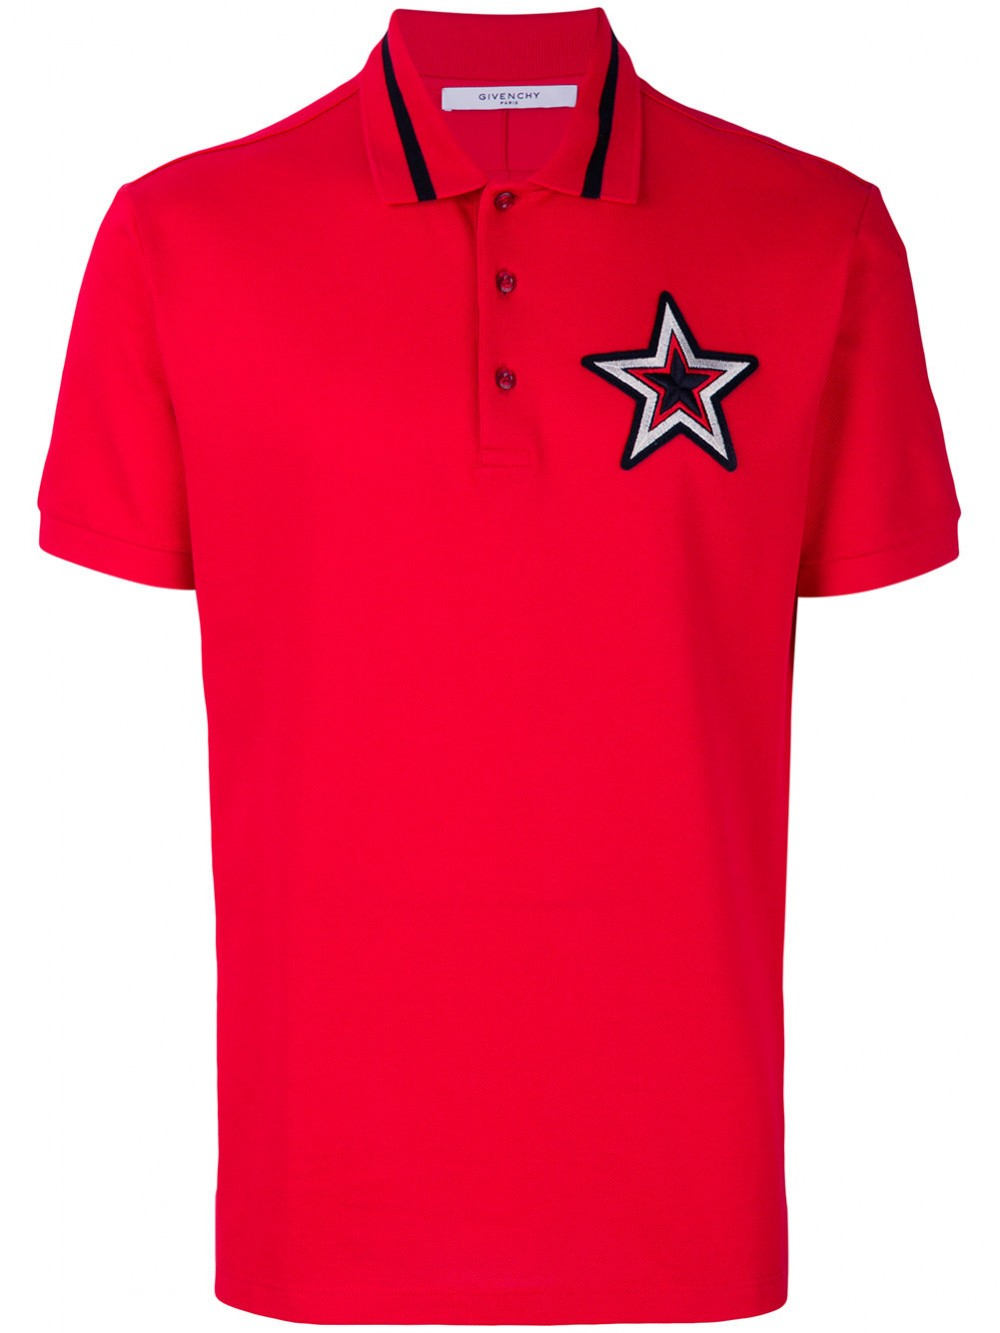 Givenchy Mens Cuban Fit Star Patch Polo